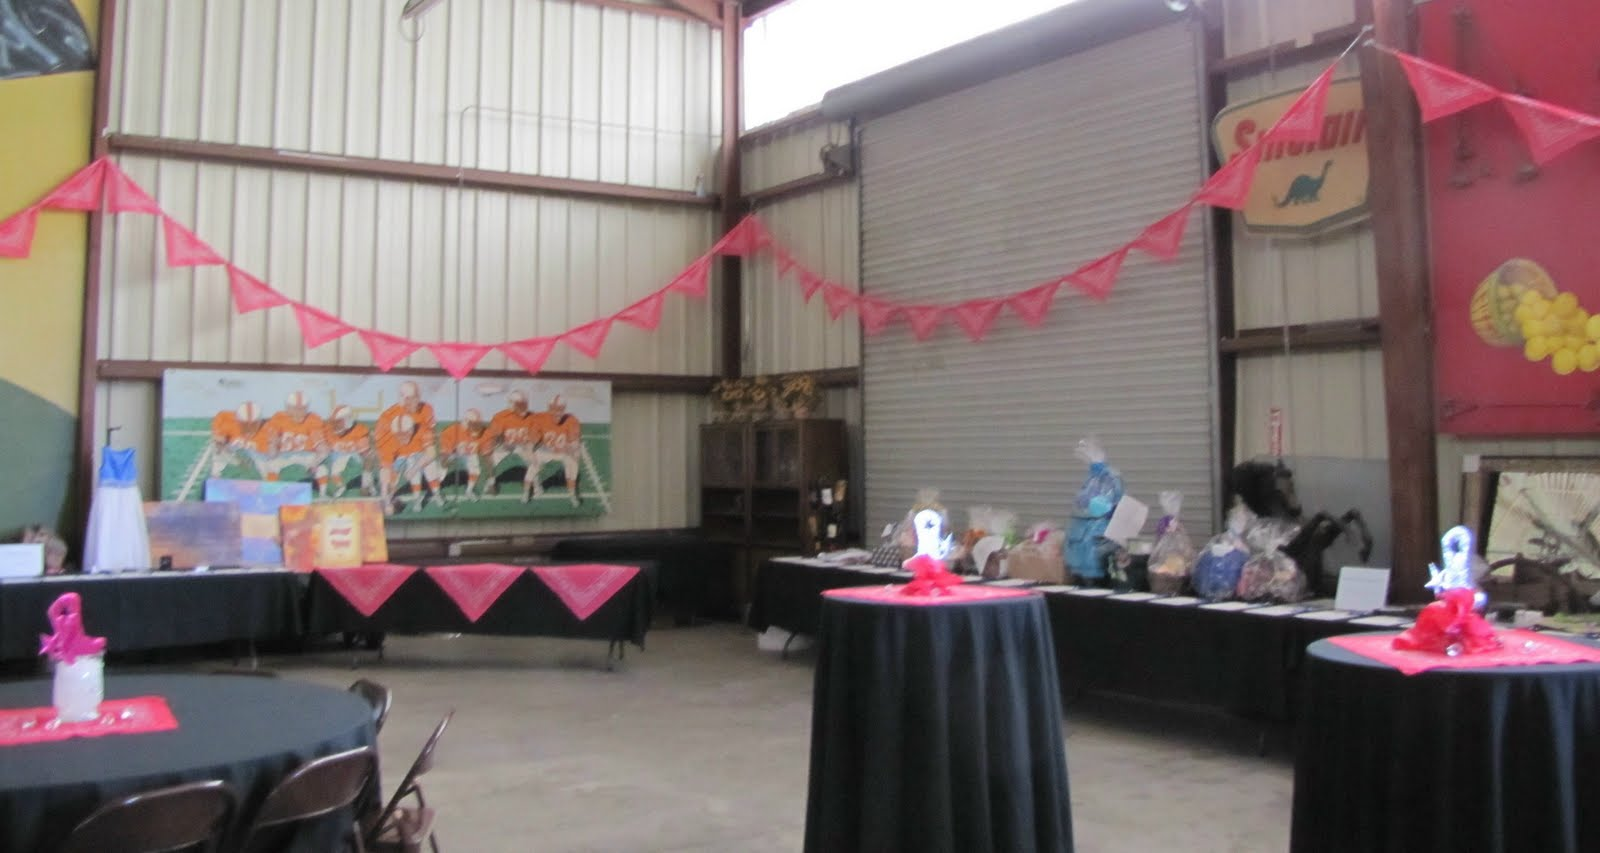 Country Style Wedding Decorations The Wedding of My Dreams BlogThe